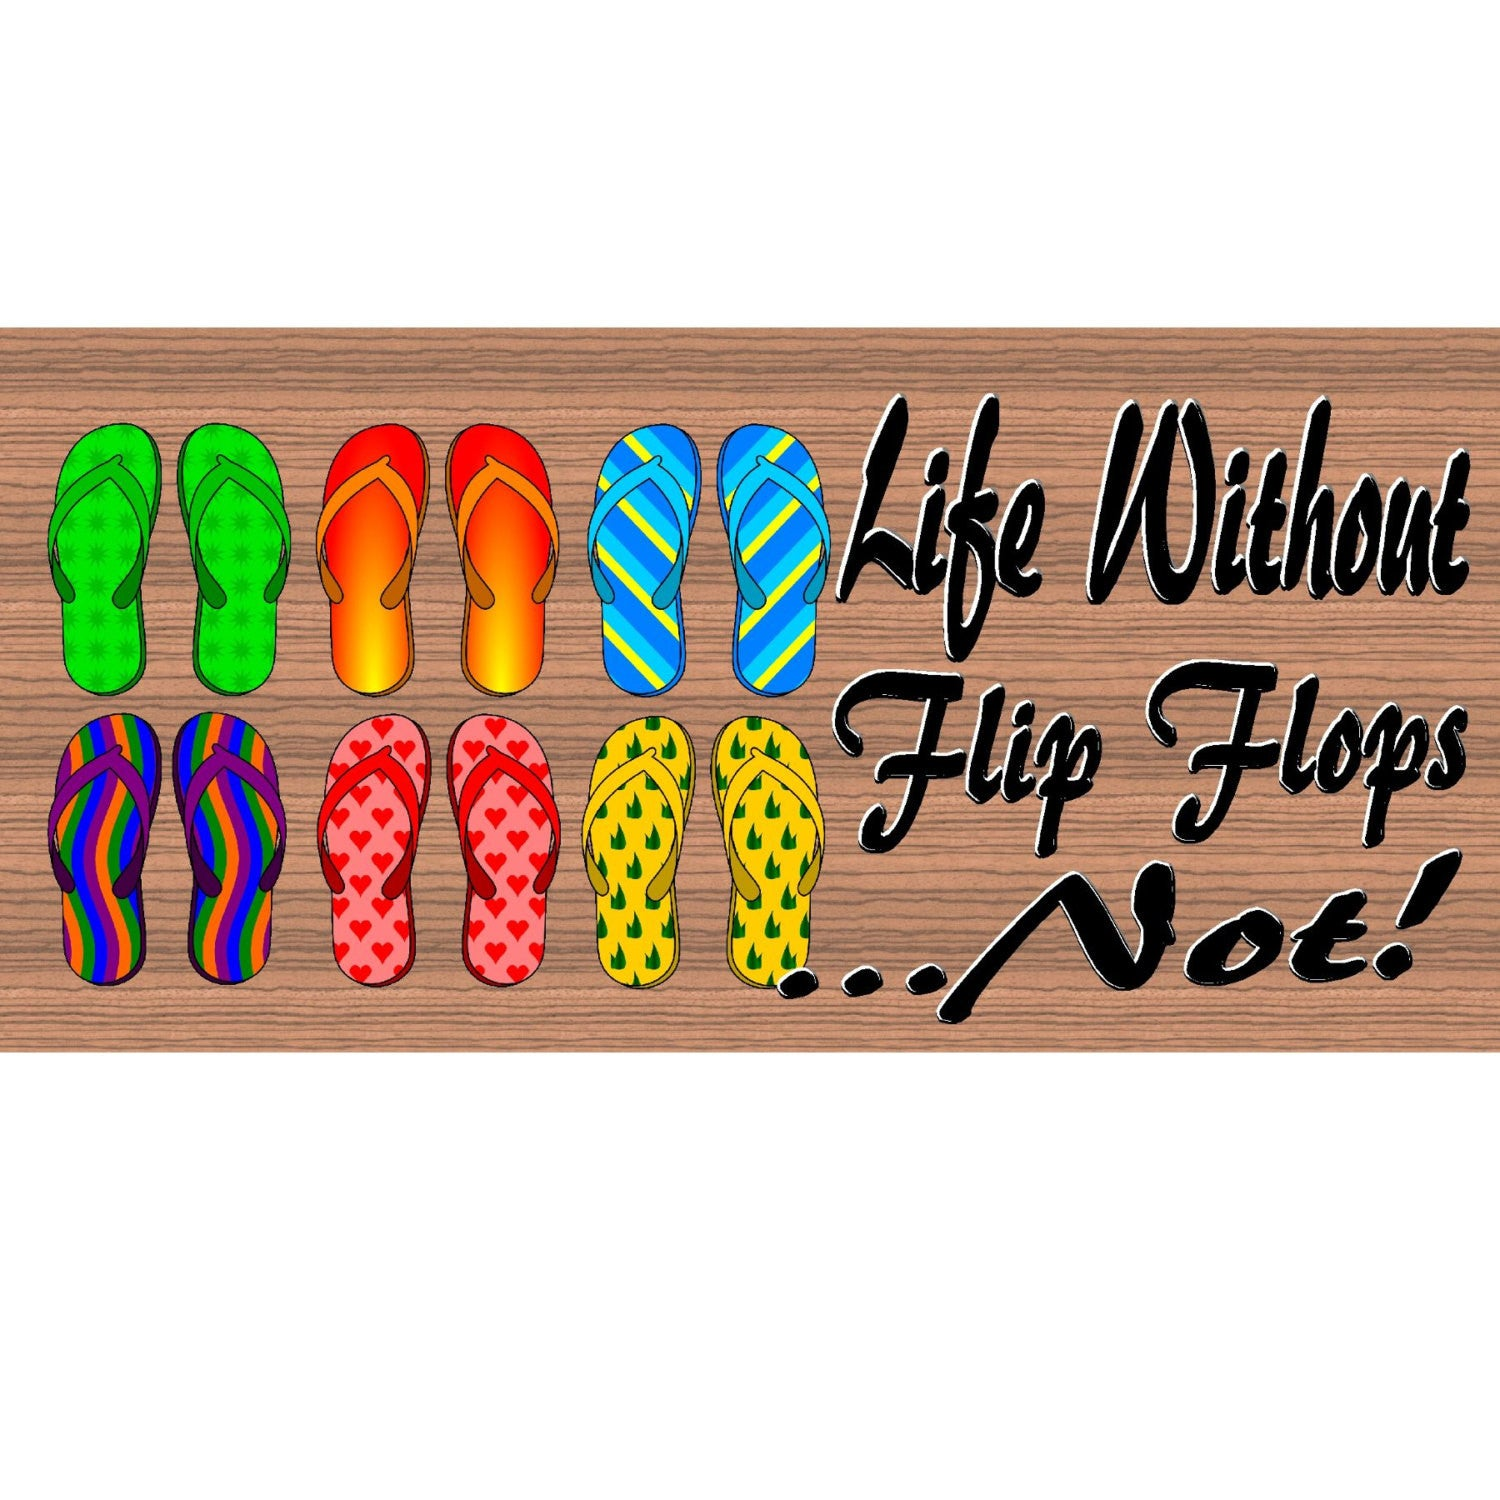 Flip Flop Wood Signs - -Life Without Flip Flops...Not GS 915- Flip Flop Plaque